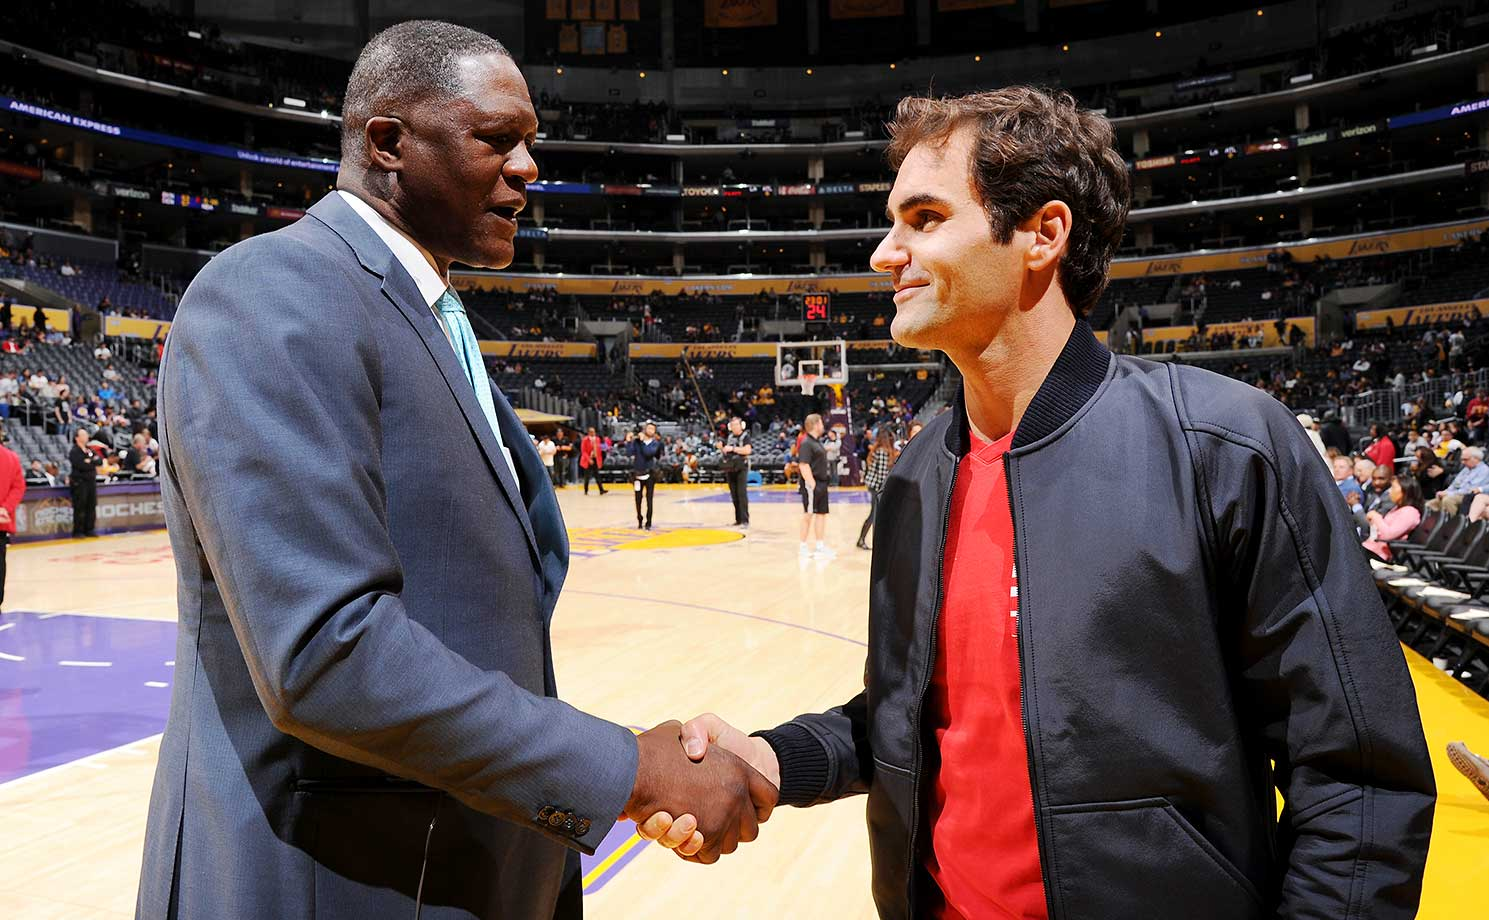 Roger Federer and NBA legend Dominique Wilkins at the game between Atlanta and the Lakers in L.A.